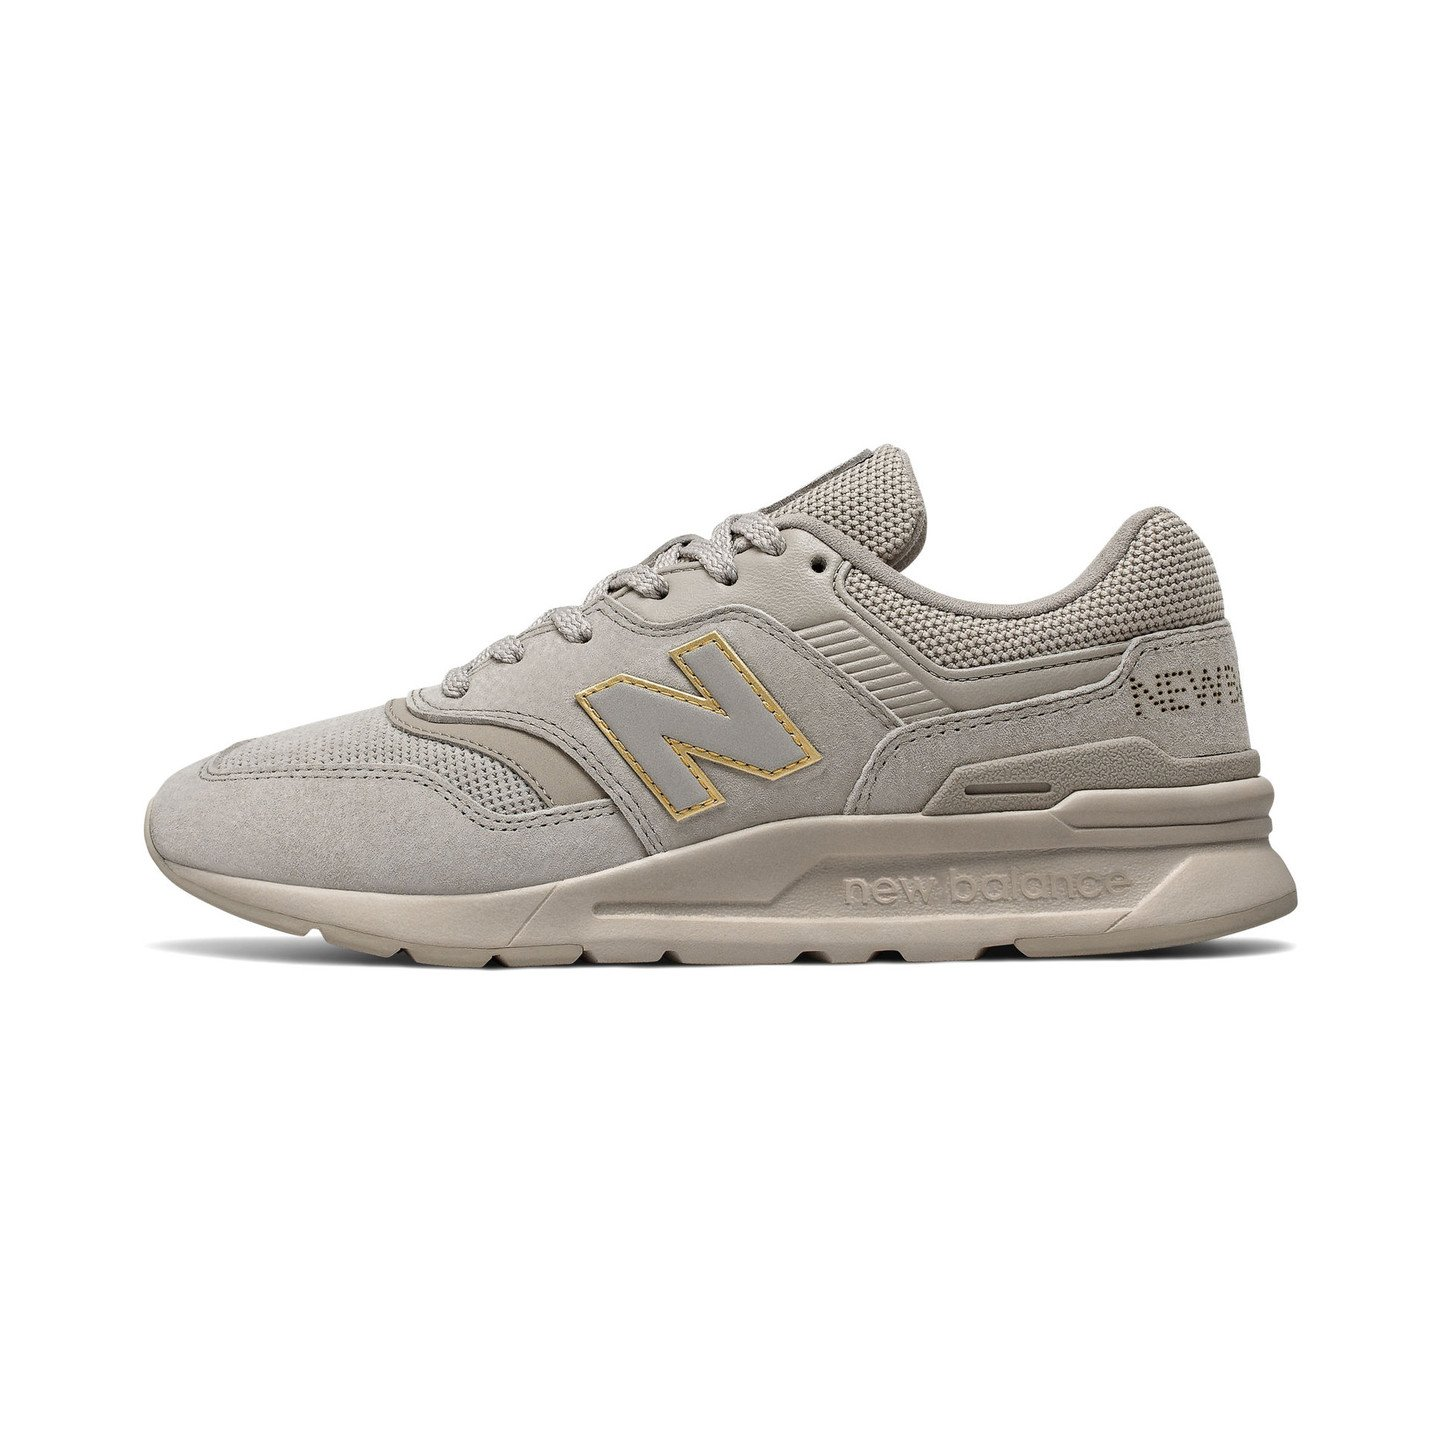 New Balance CW997 Alpaca / Metallic Gold CW997HCL